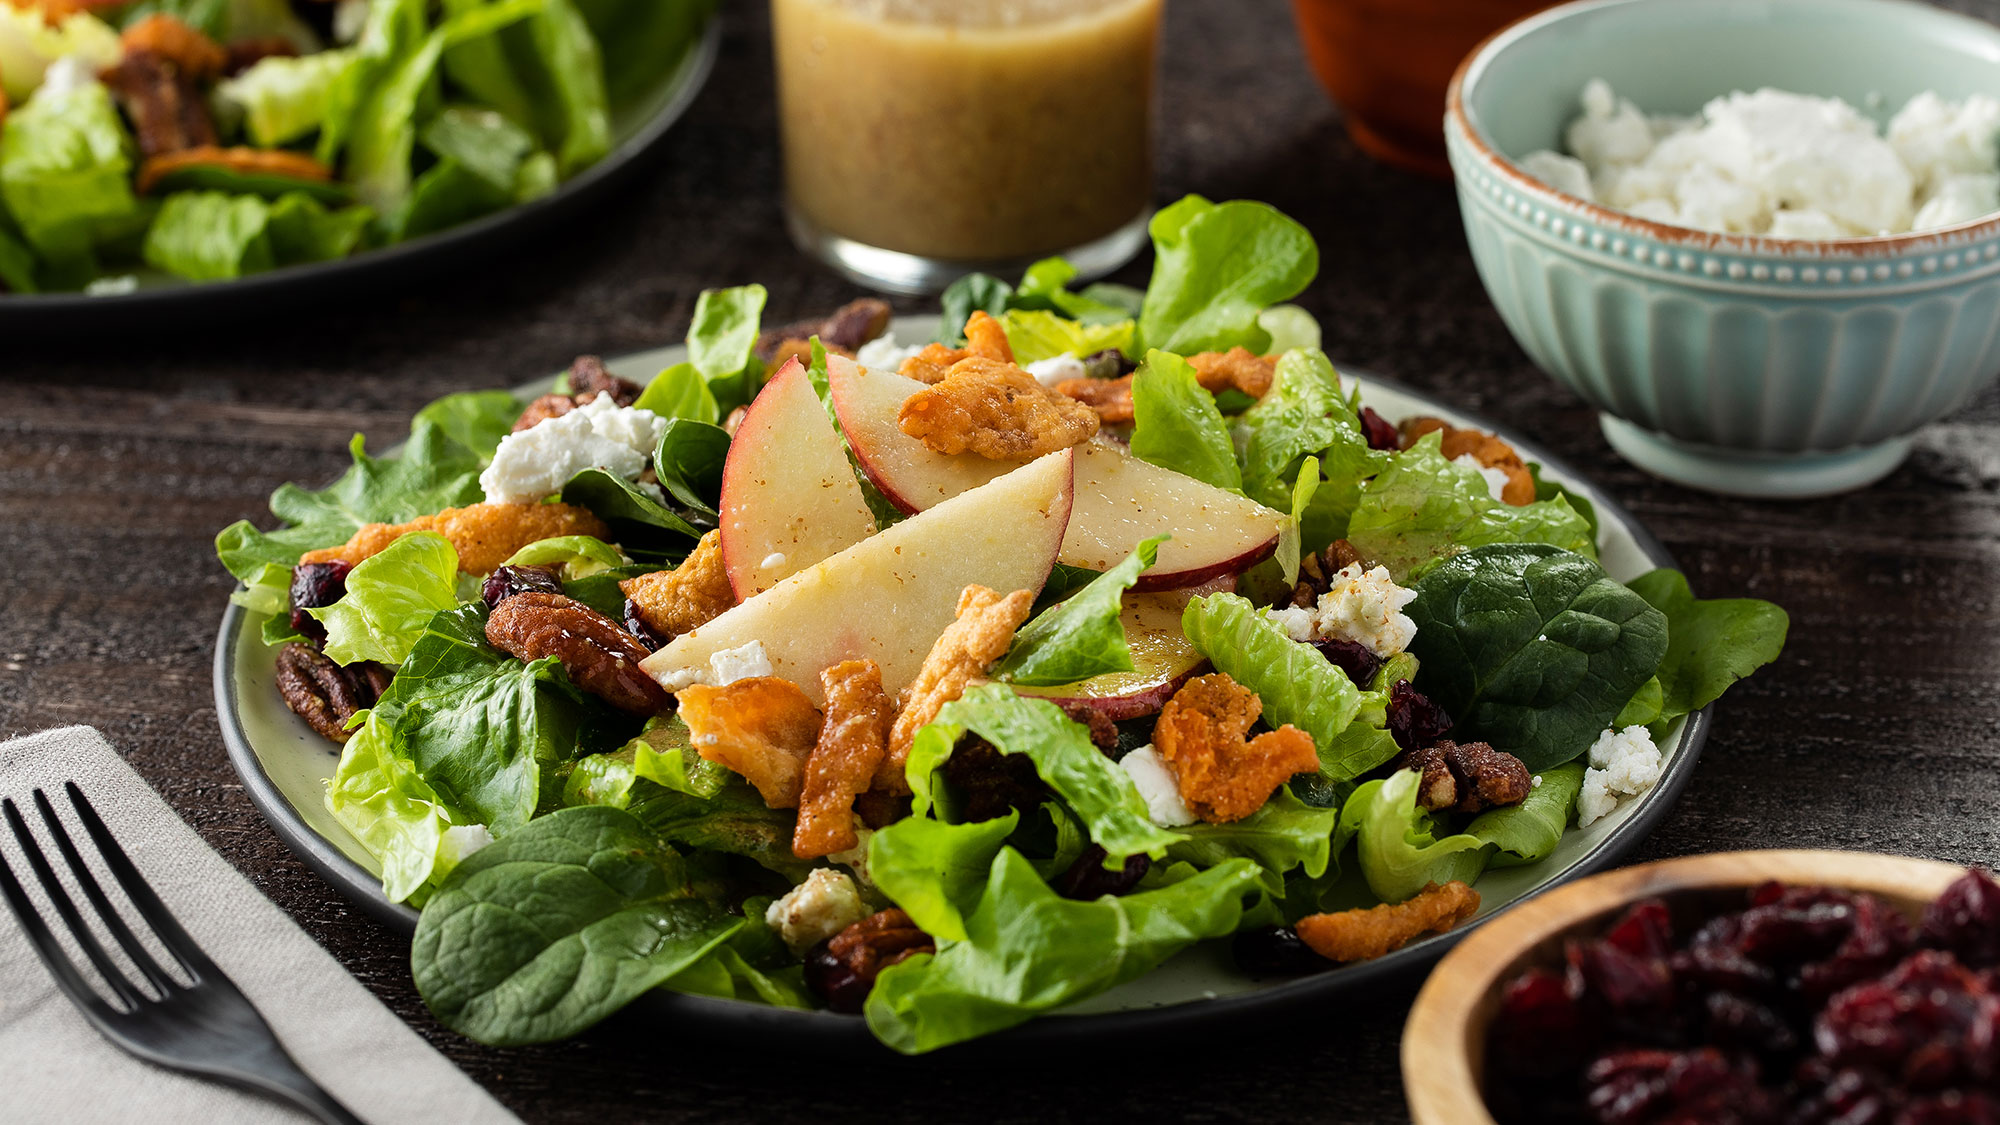 McCormick Harvest Salad with Sweet Dijon Vinaigrette